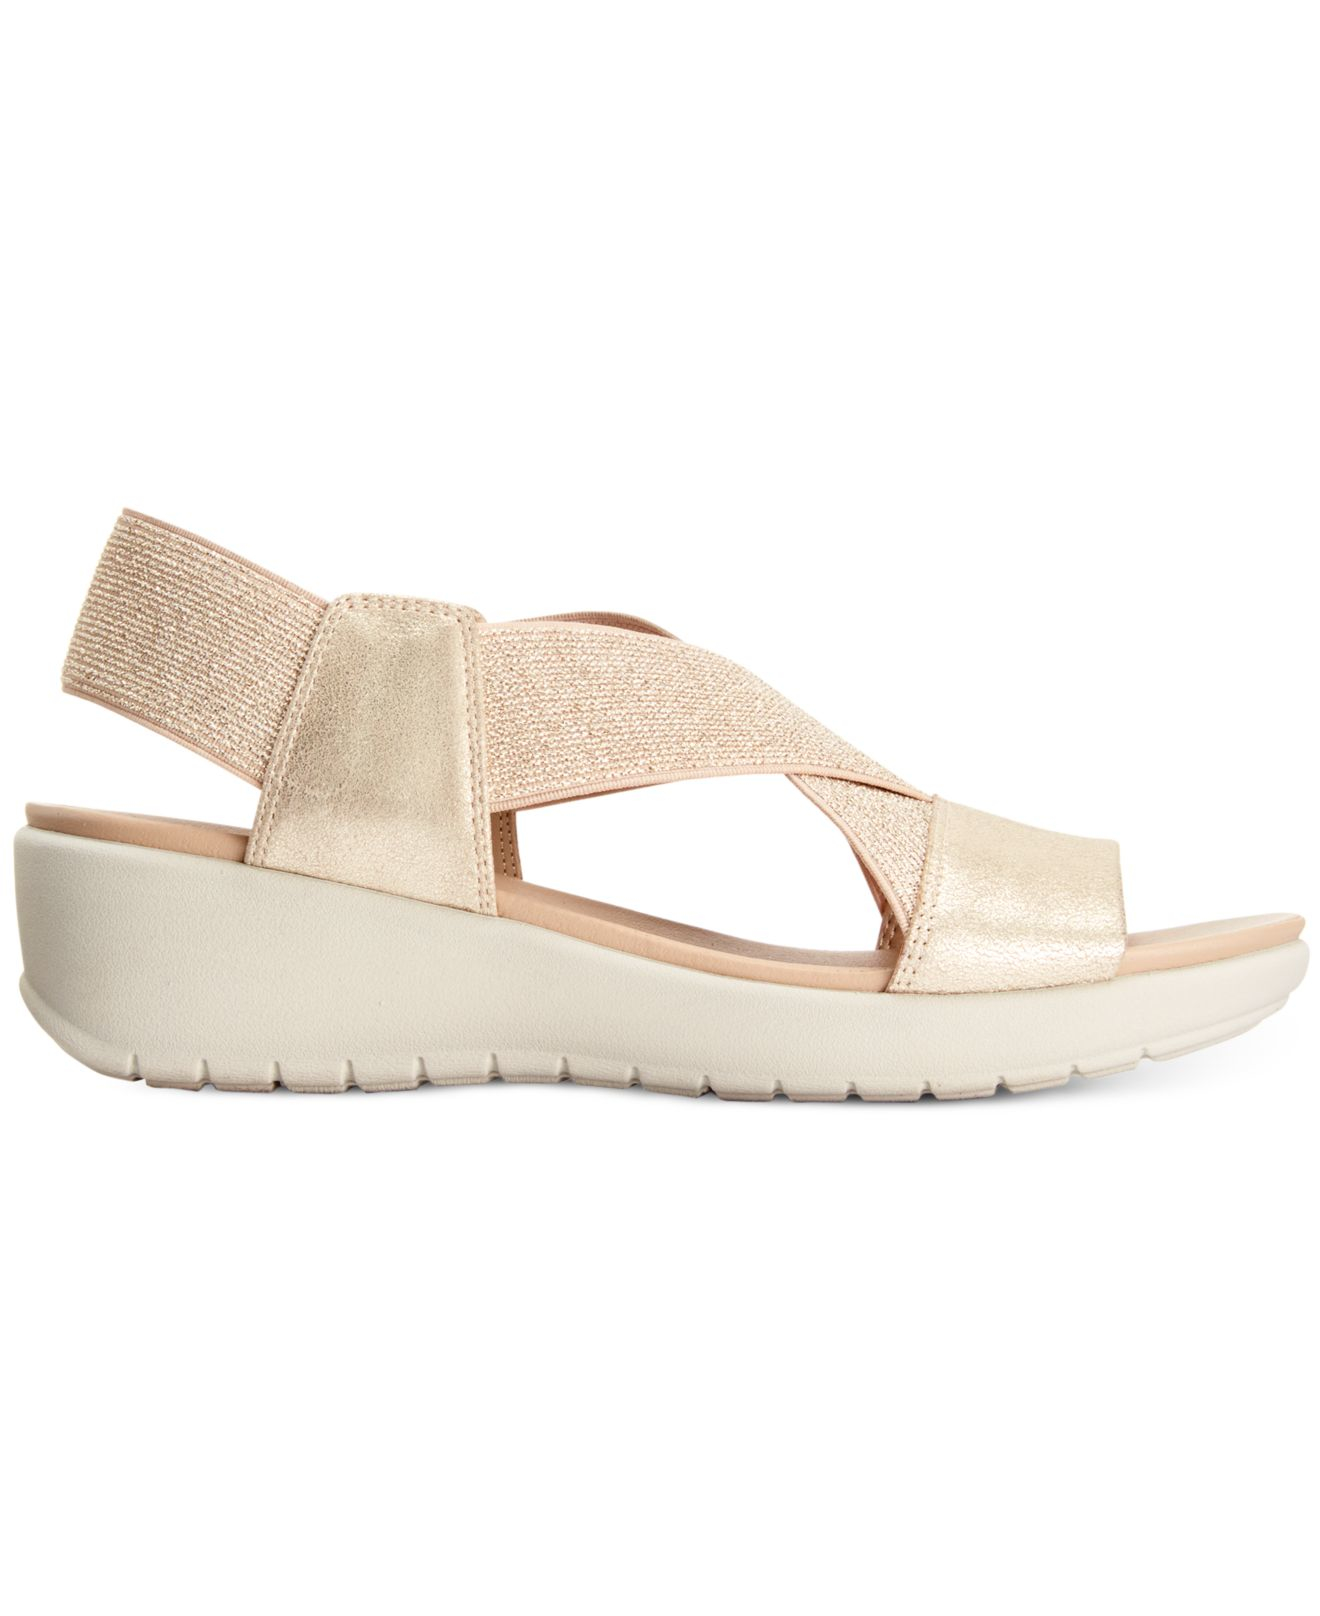 Easy Spirit Wiley Wedge Sandals In Natural Lyst